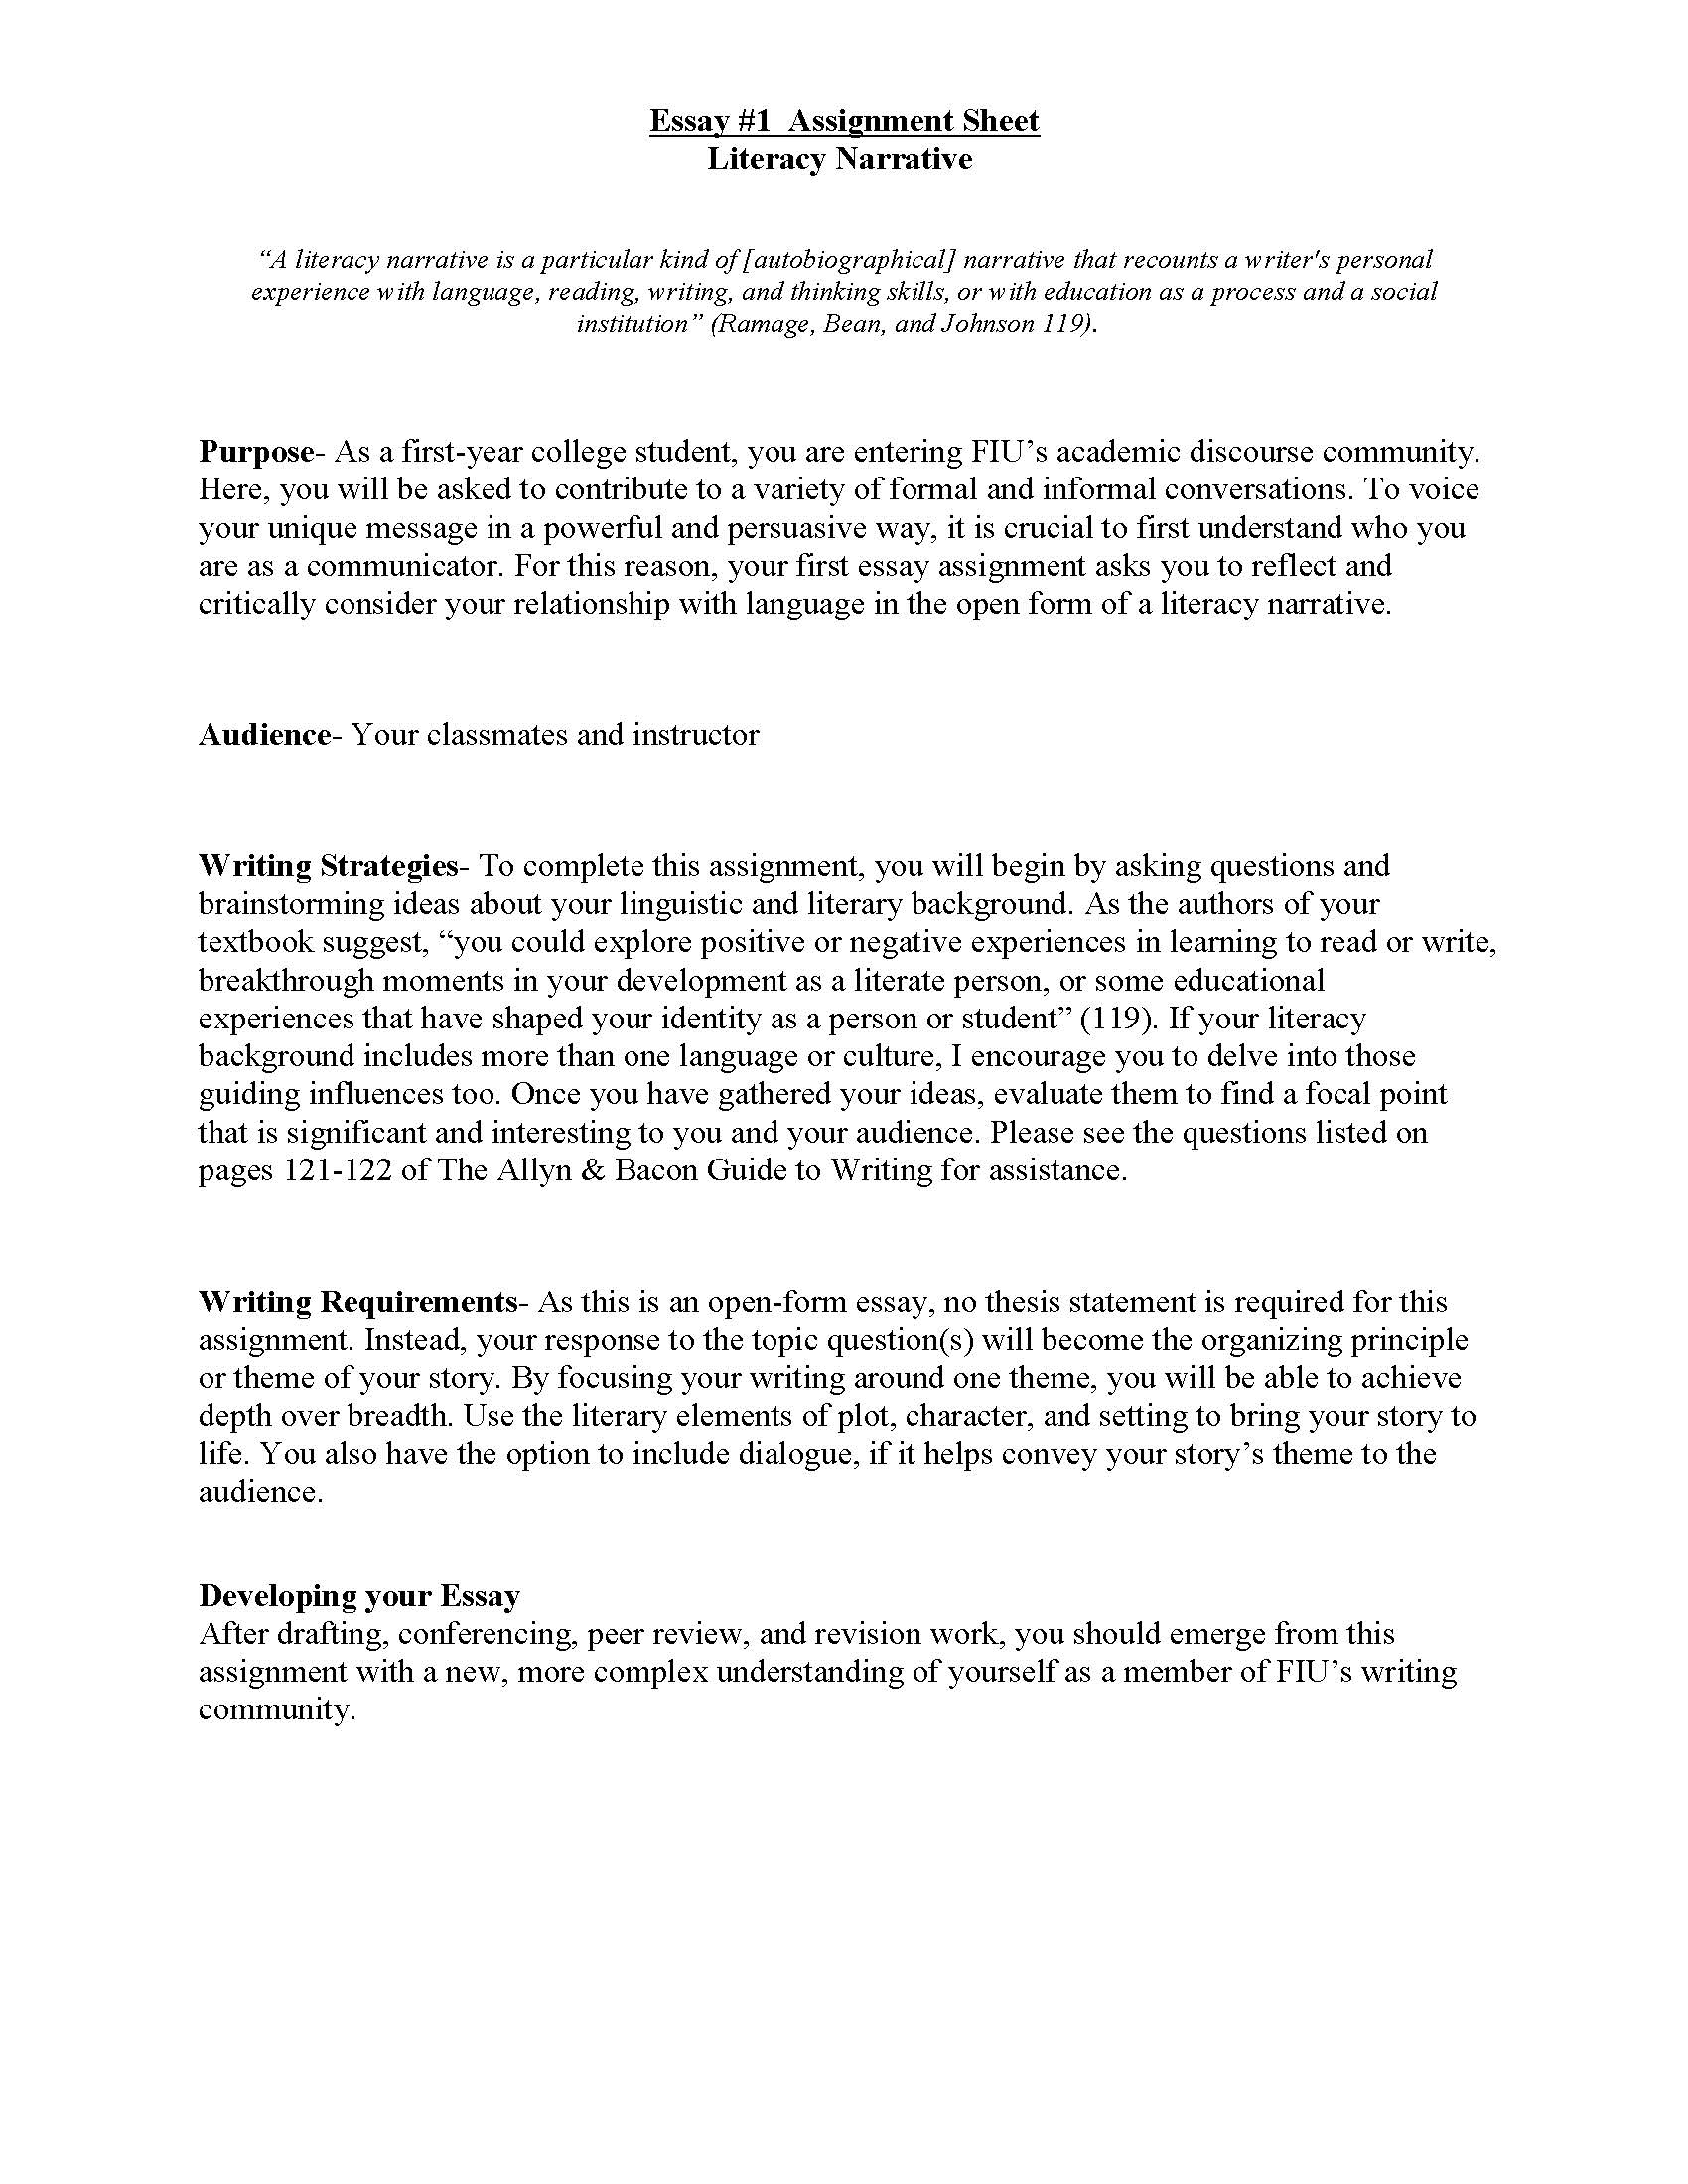 019 Narrative Essays High School Literacy Unit Assignment Spring 2012 Page 1 Unique Essay Examples Personal Pdf Full